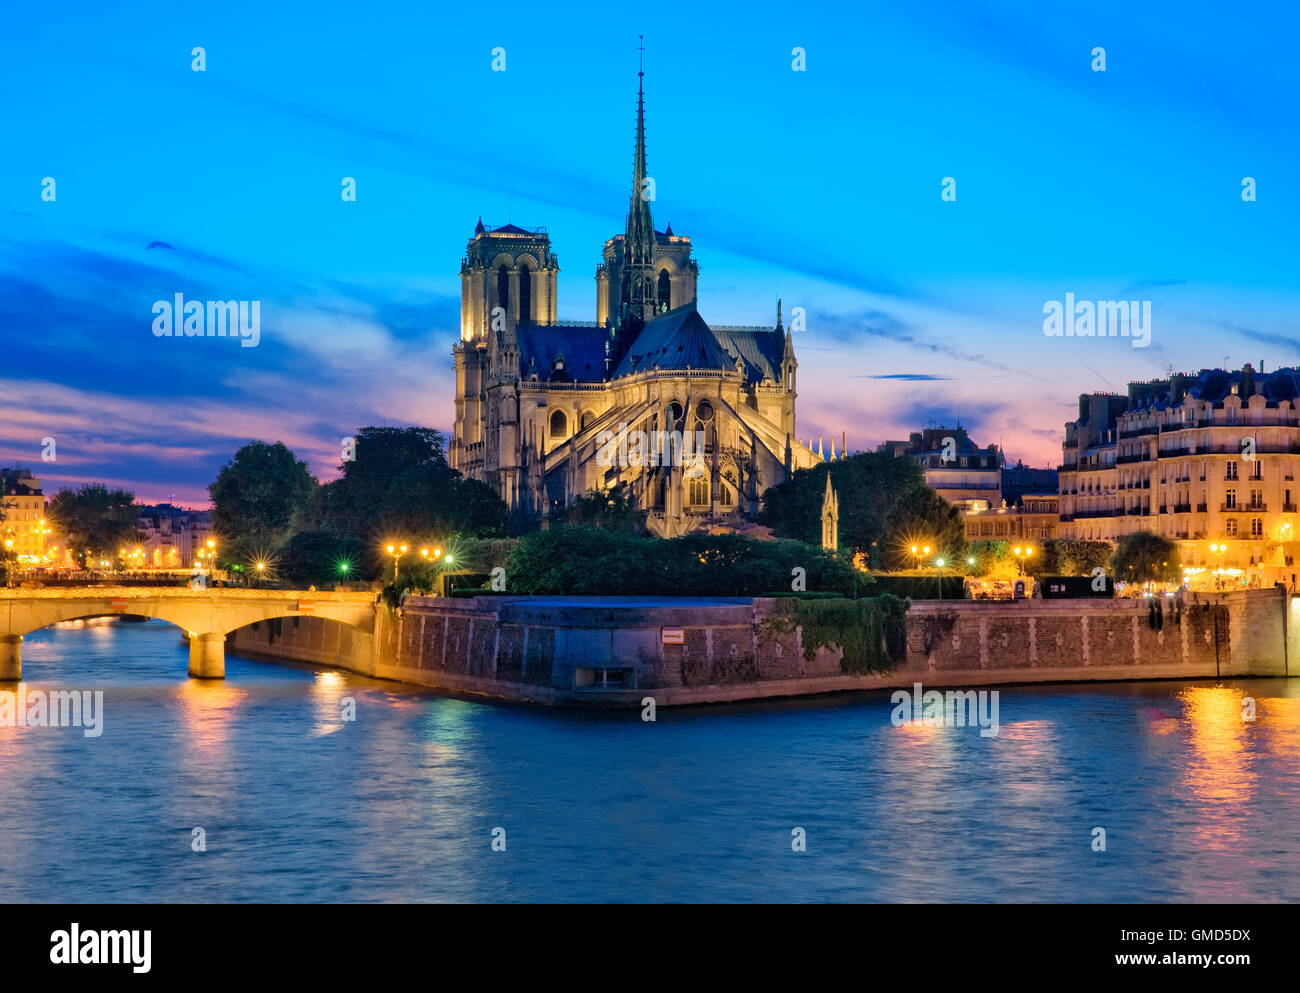 Cathédrale Notre Dame de Paris, France Photo Stock